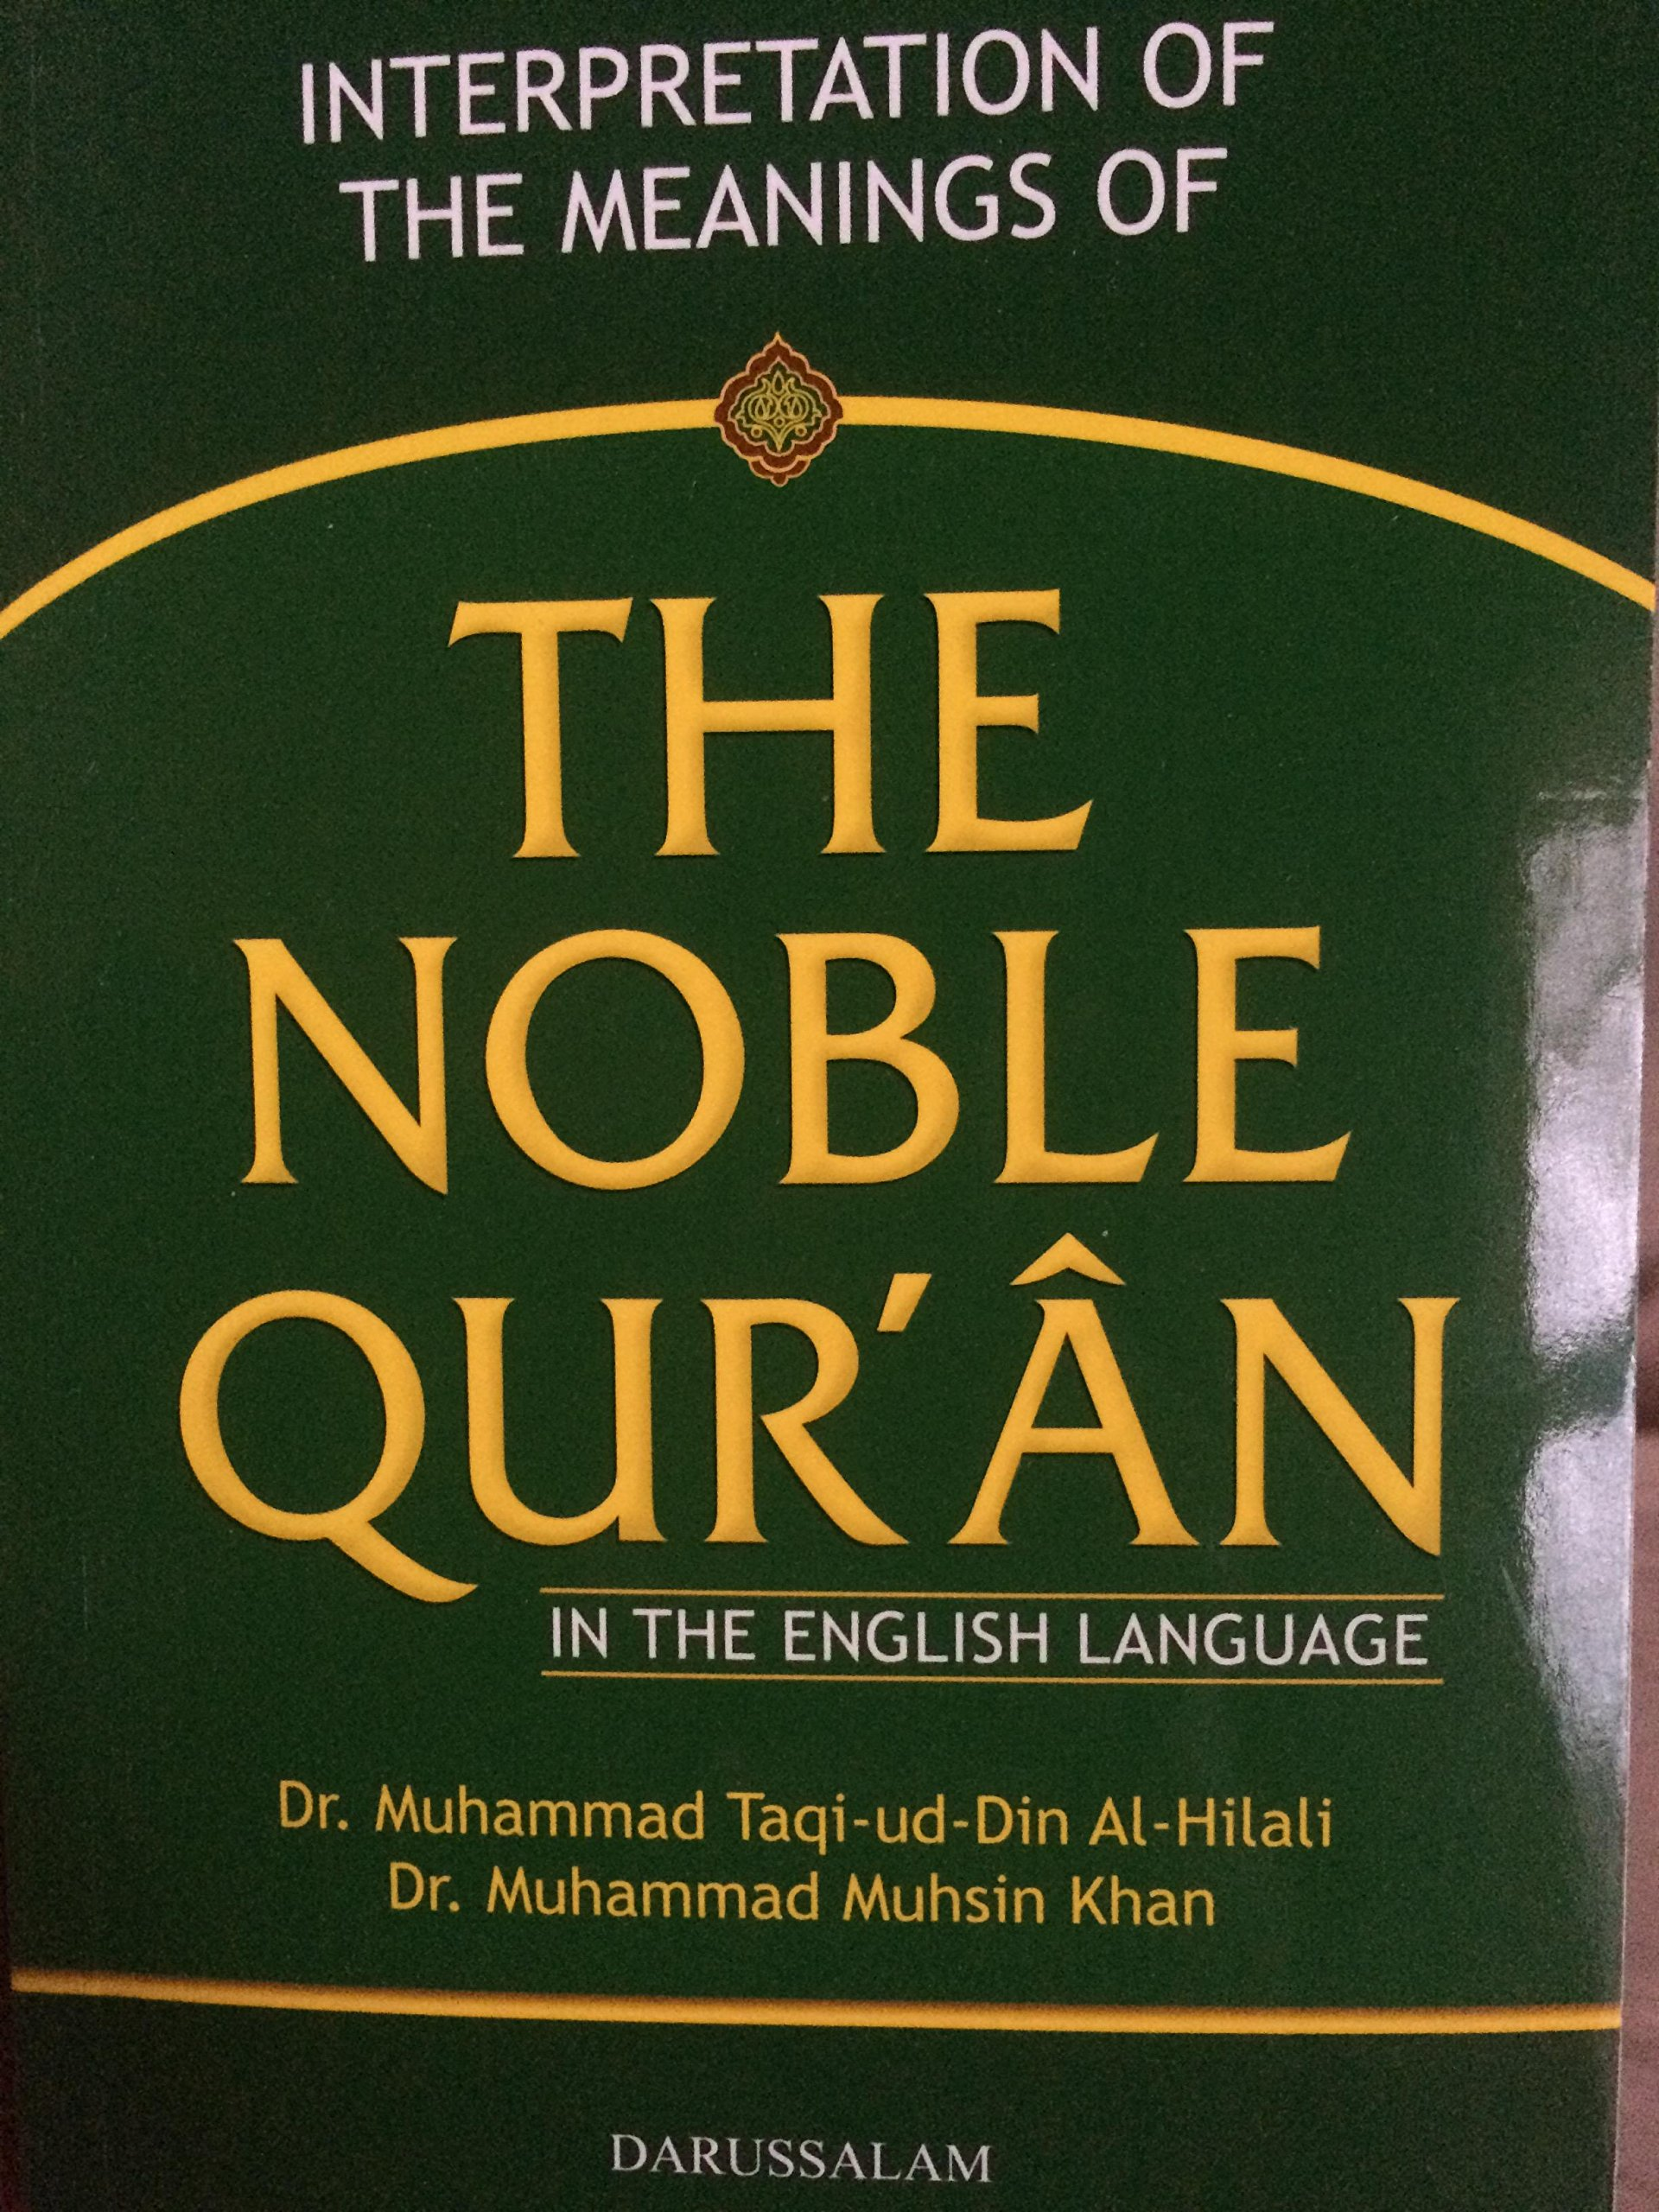 Download Interpretation Of The Meanings Of The Noble Quran InThe English Language ebook